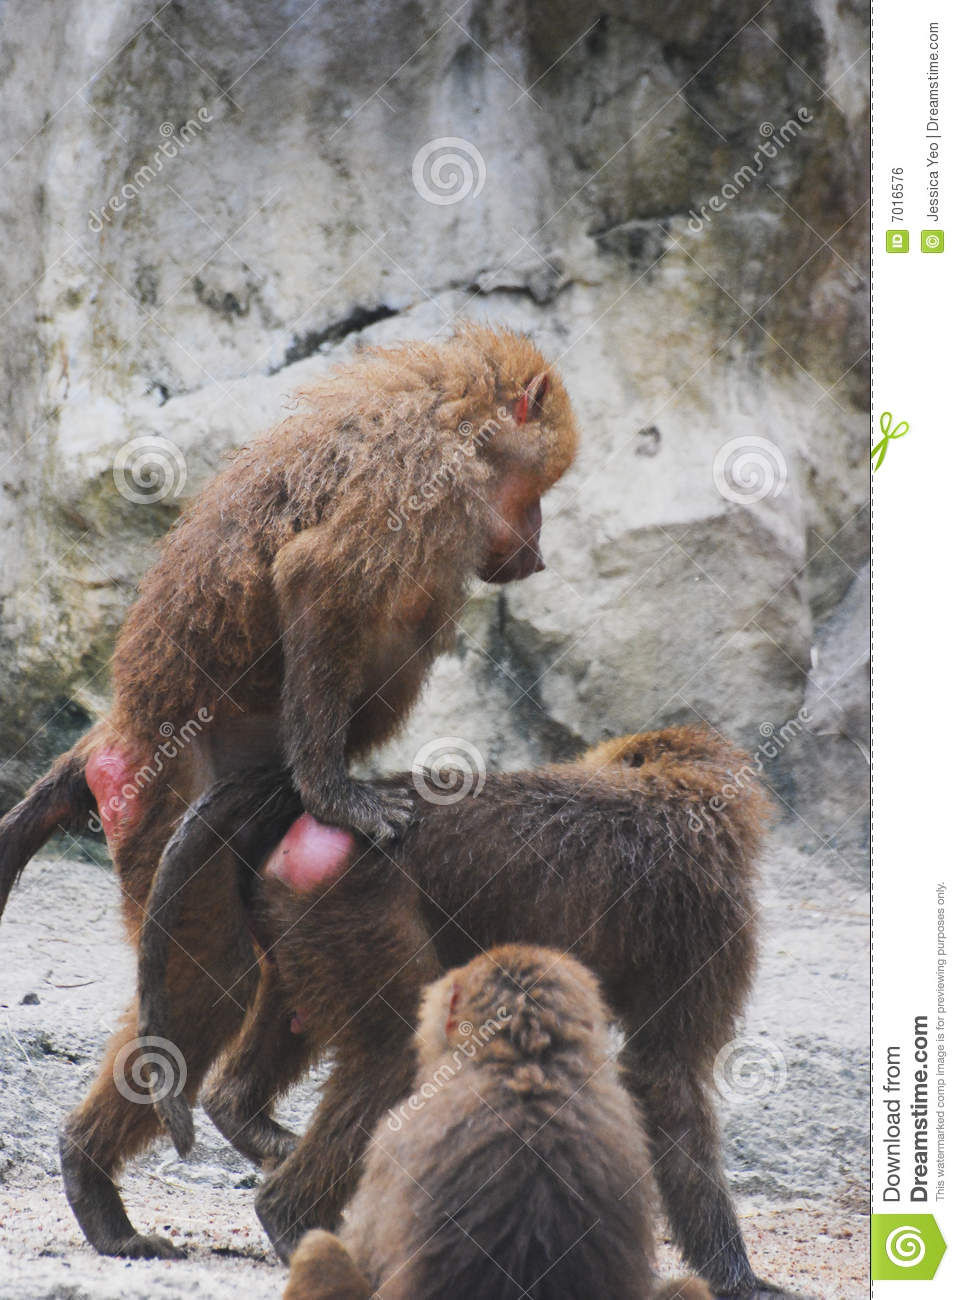 Monkeys Royalty Free Stock Image - Image: 7016576